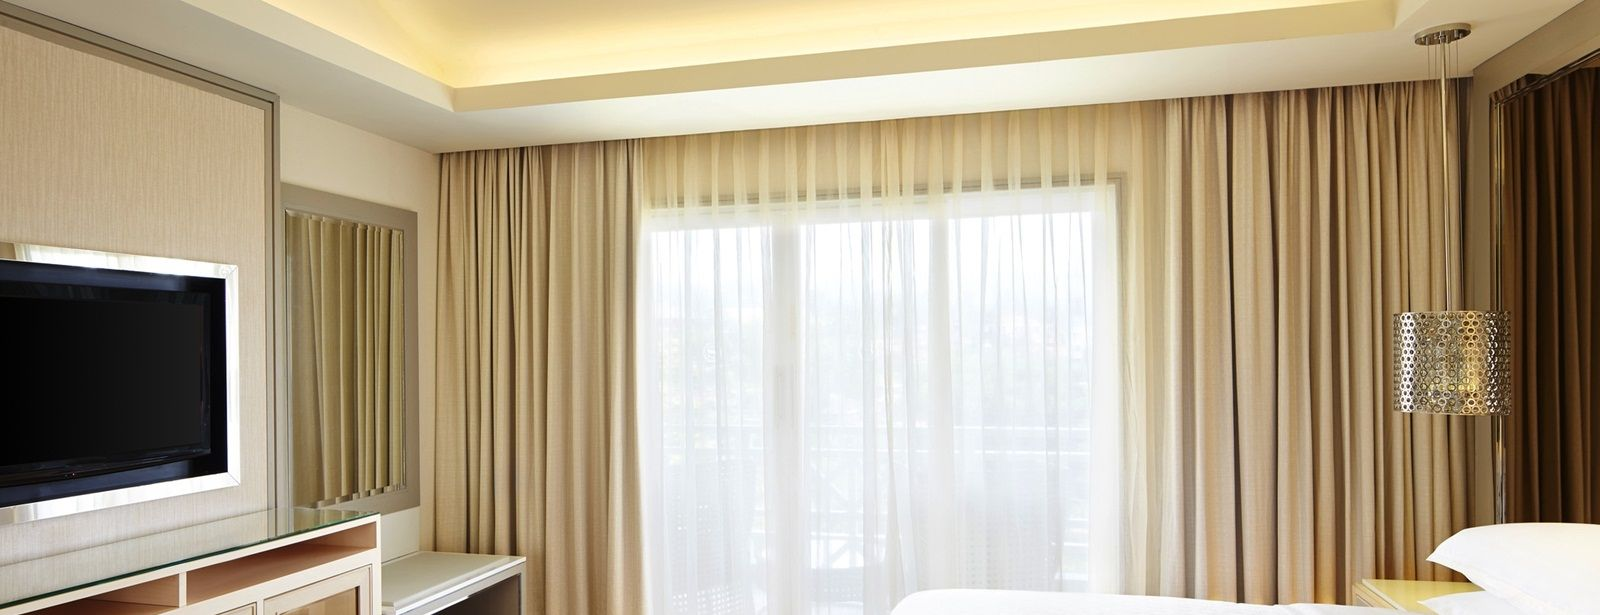 Towers Suite Bed Room Sheraton Bandung